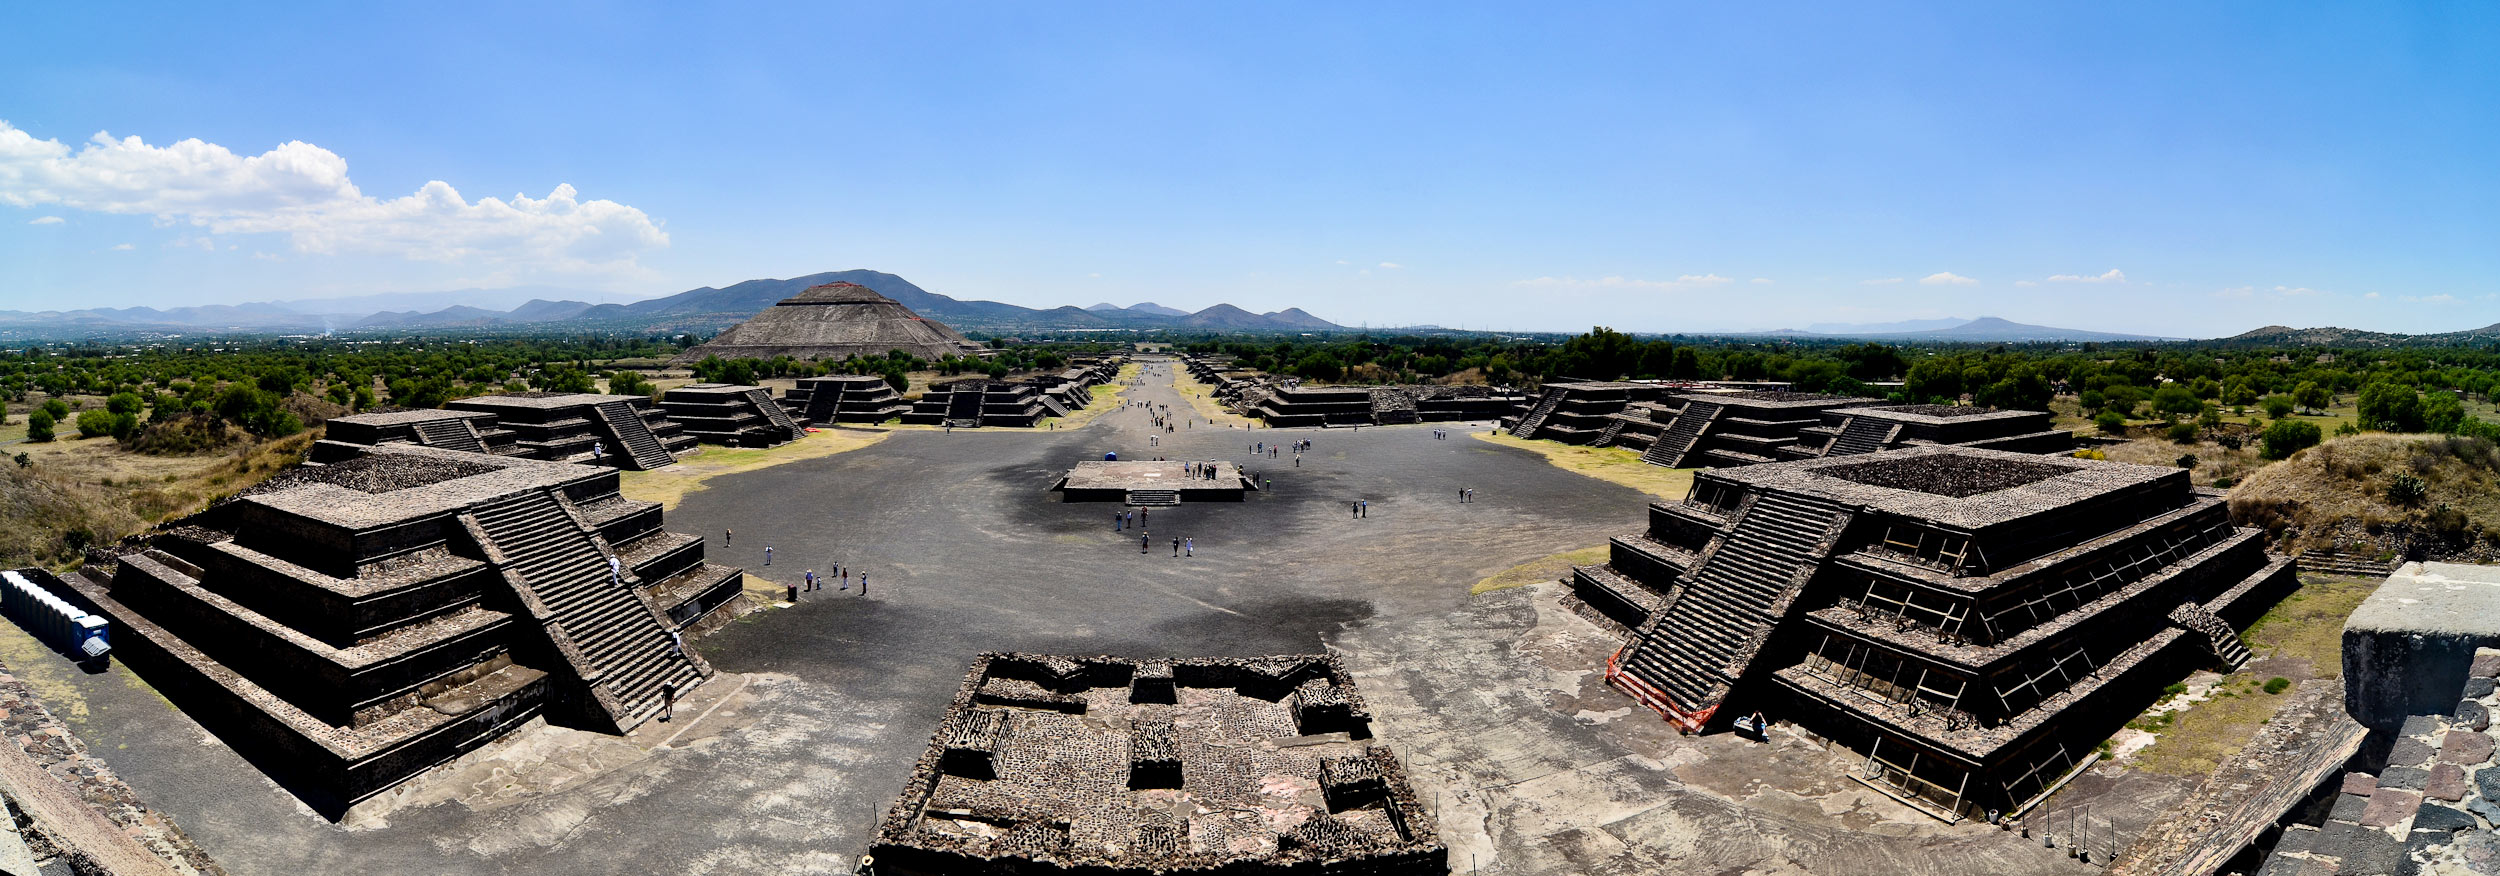 an overview of the pyramid of the sun in mexico The pyramid of the sun was completed circa 200 ad near mexico city in 1971, a large cave underneath the pyramid of the sun was discovered which throws light on, may this is the reason why the why the pyramid was constructed, and perhaps teotihuacan itself was built where it was.